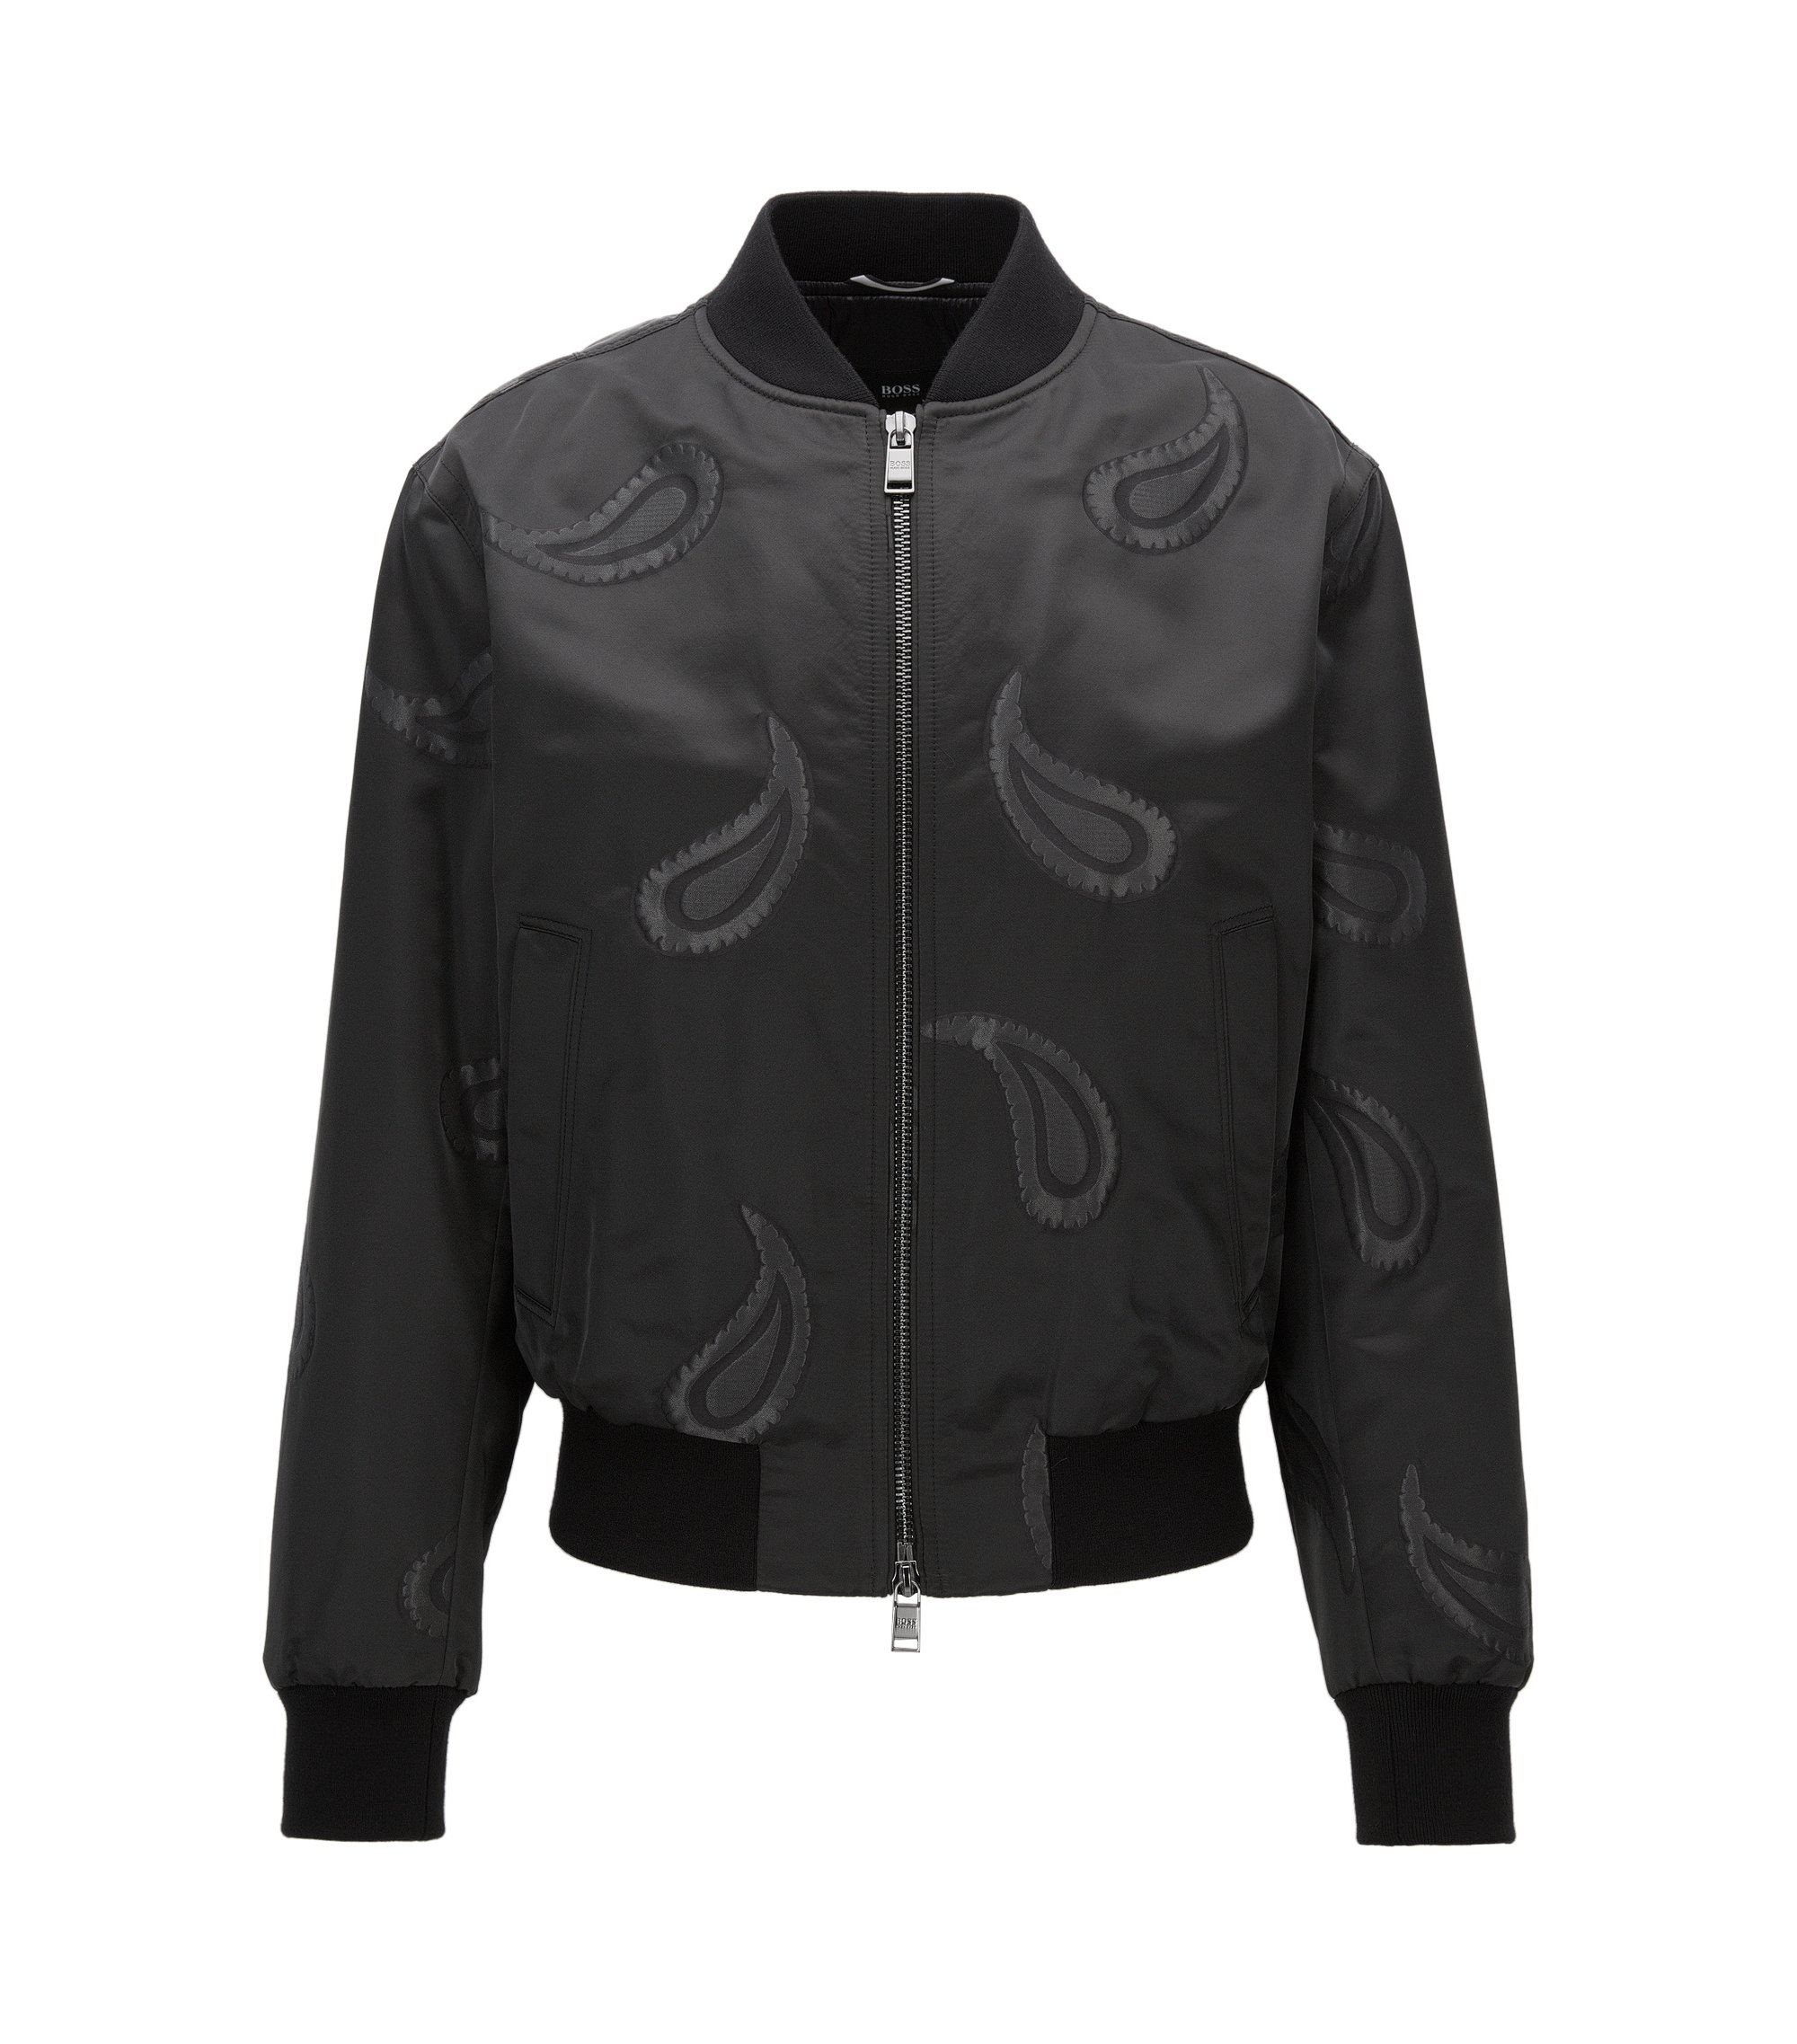 Paisley Jacquard Bomber Jacket, Regular Fit | Chanton, Black